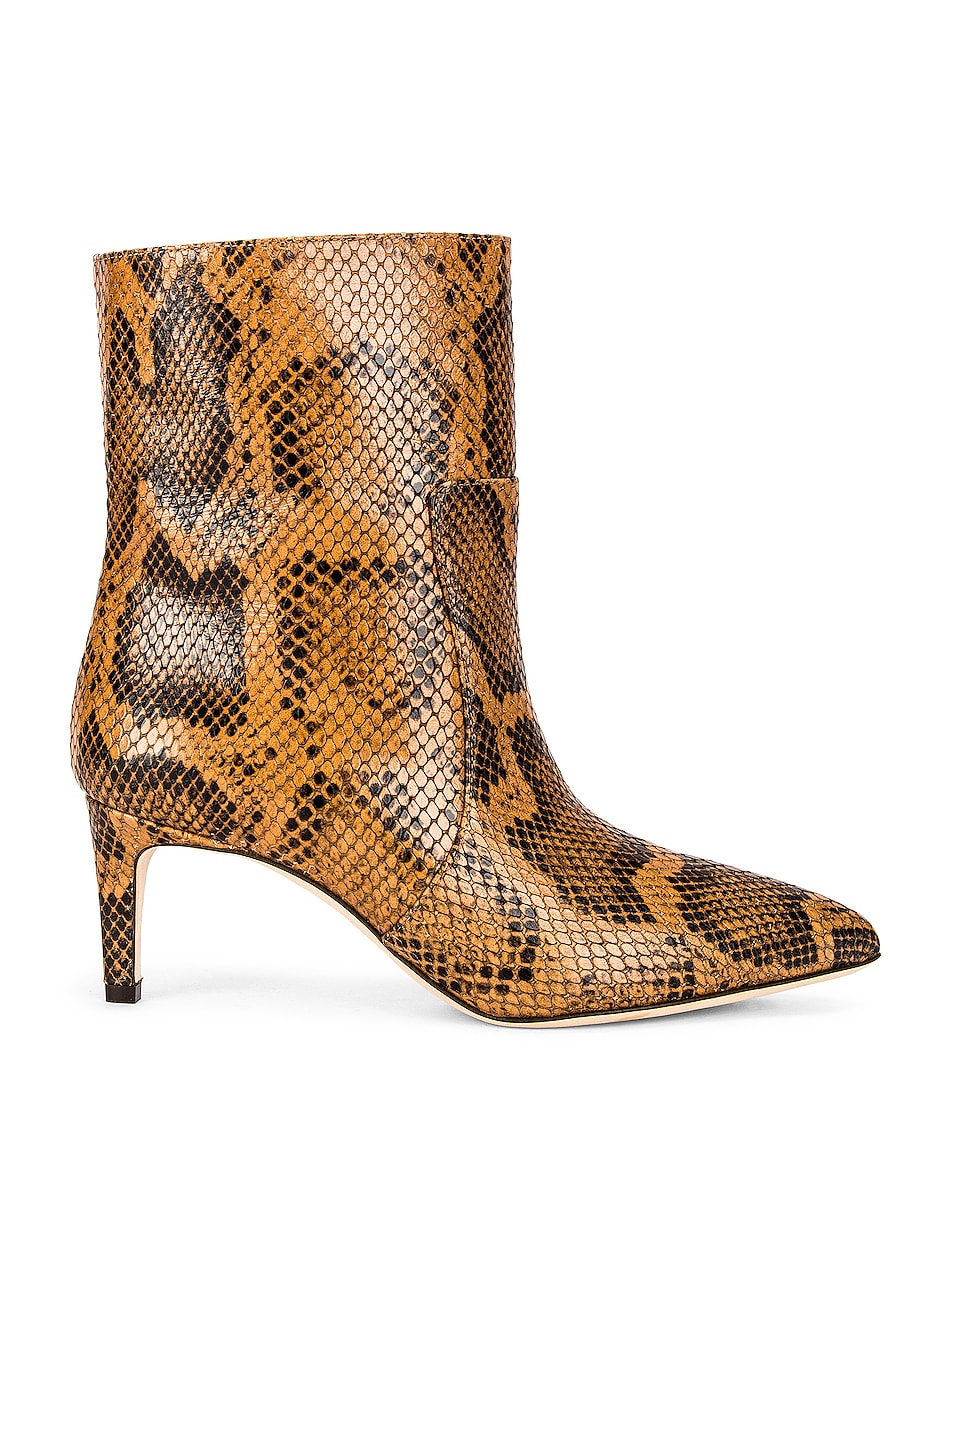 Image 1 of Paris Texas Python Print 60 Ankle Boot in Cognac